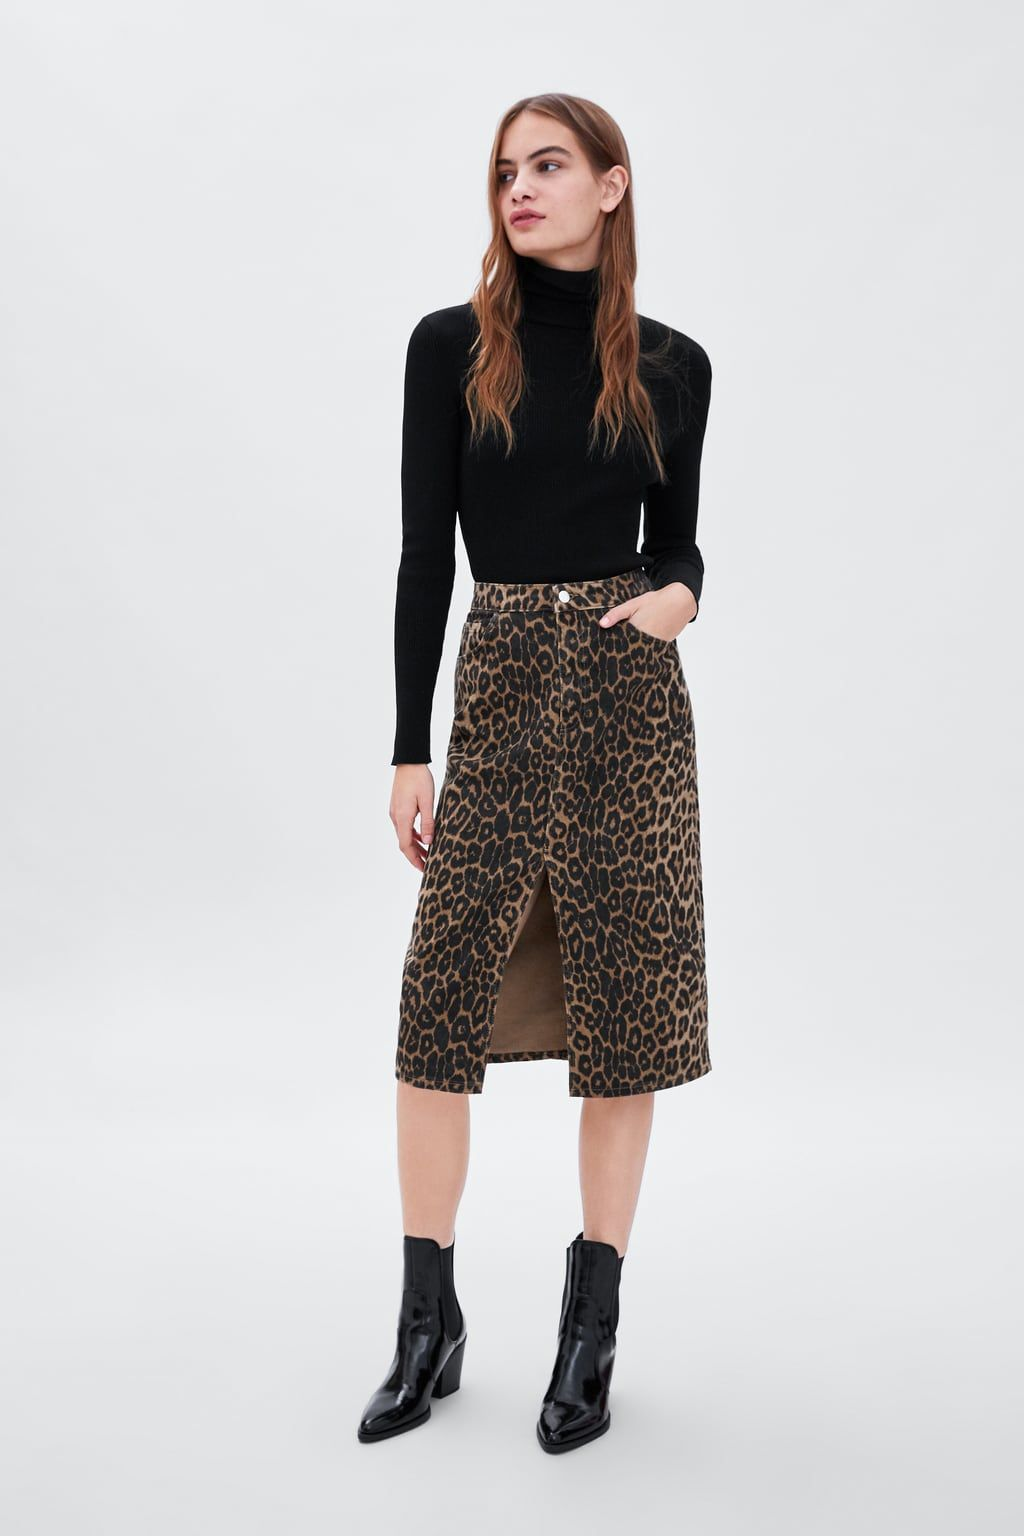 b23291535b FALDA ESTAMPADO ANIMAL | Clothes I like | Leopard print skirt ...